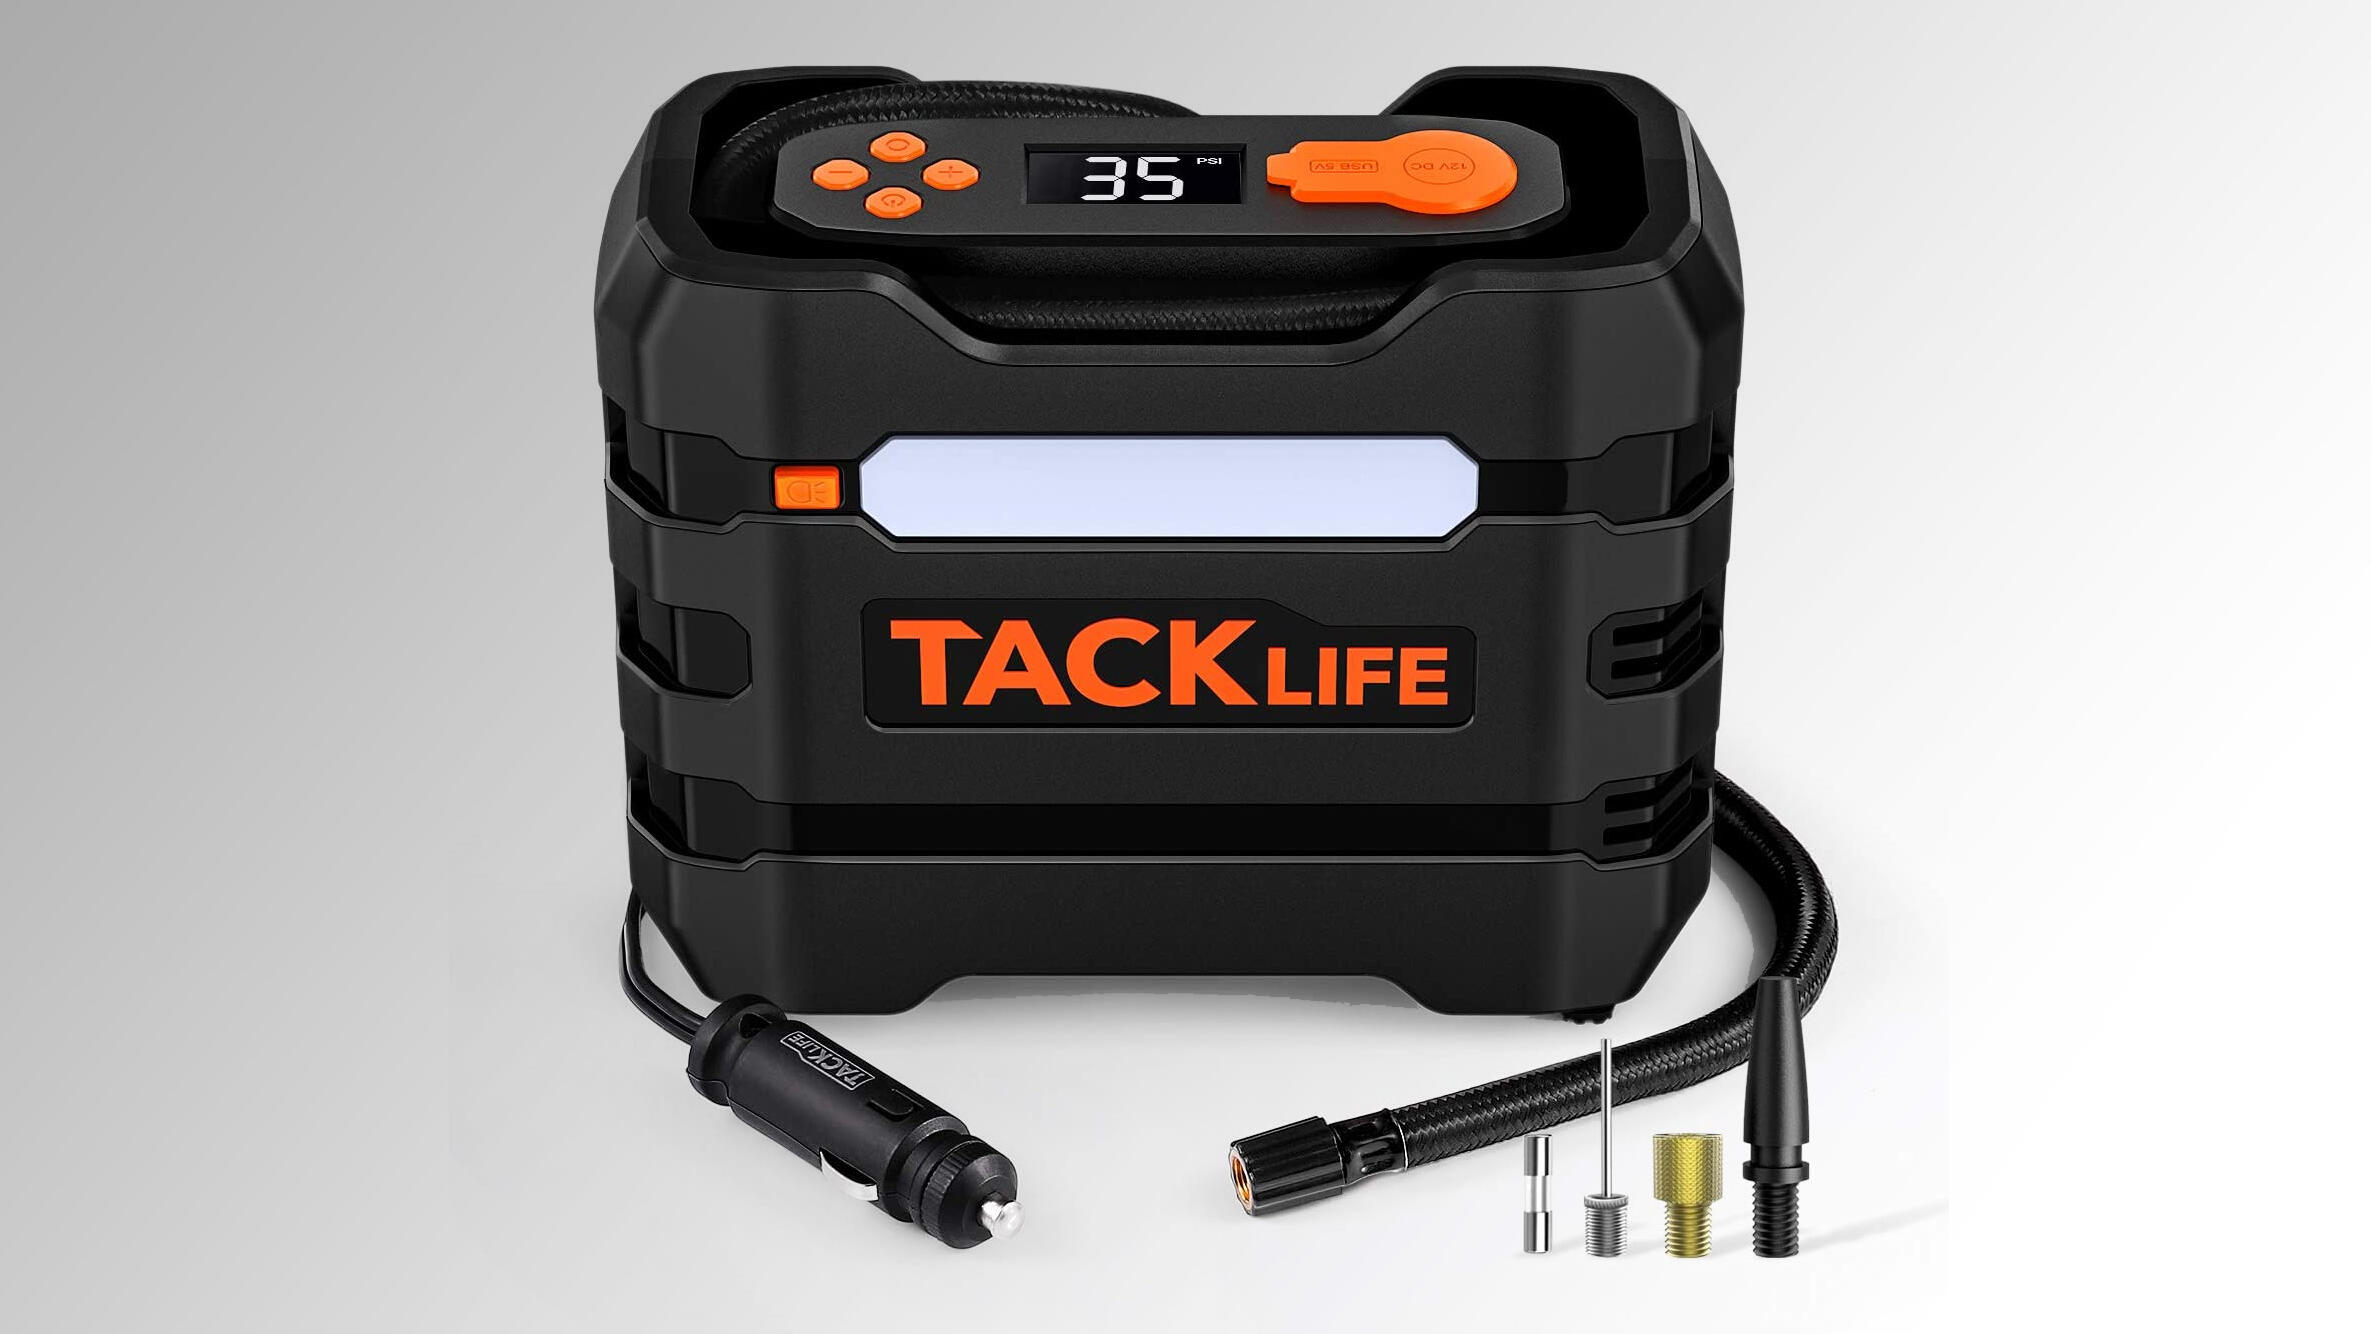 Inflate flat tires in under 5 minutes with this Tacklife air compressor for  (Update: Expired)